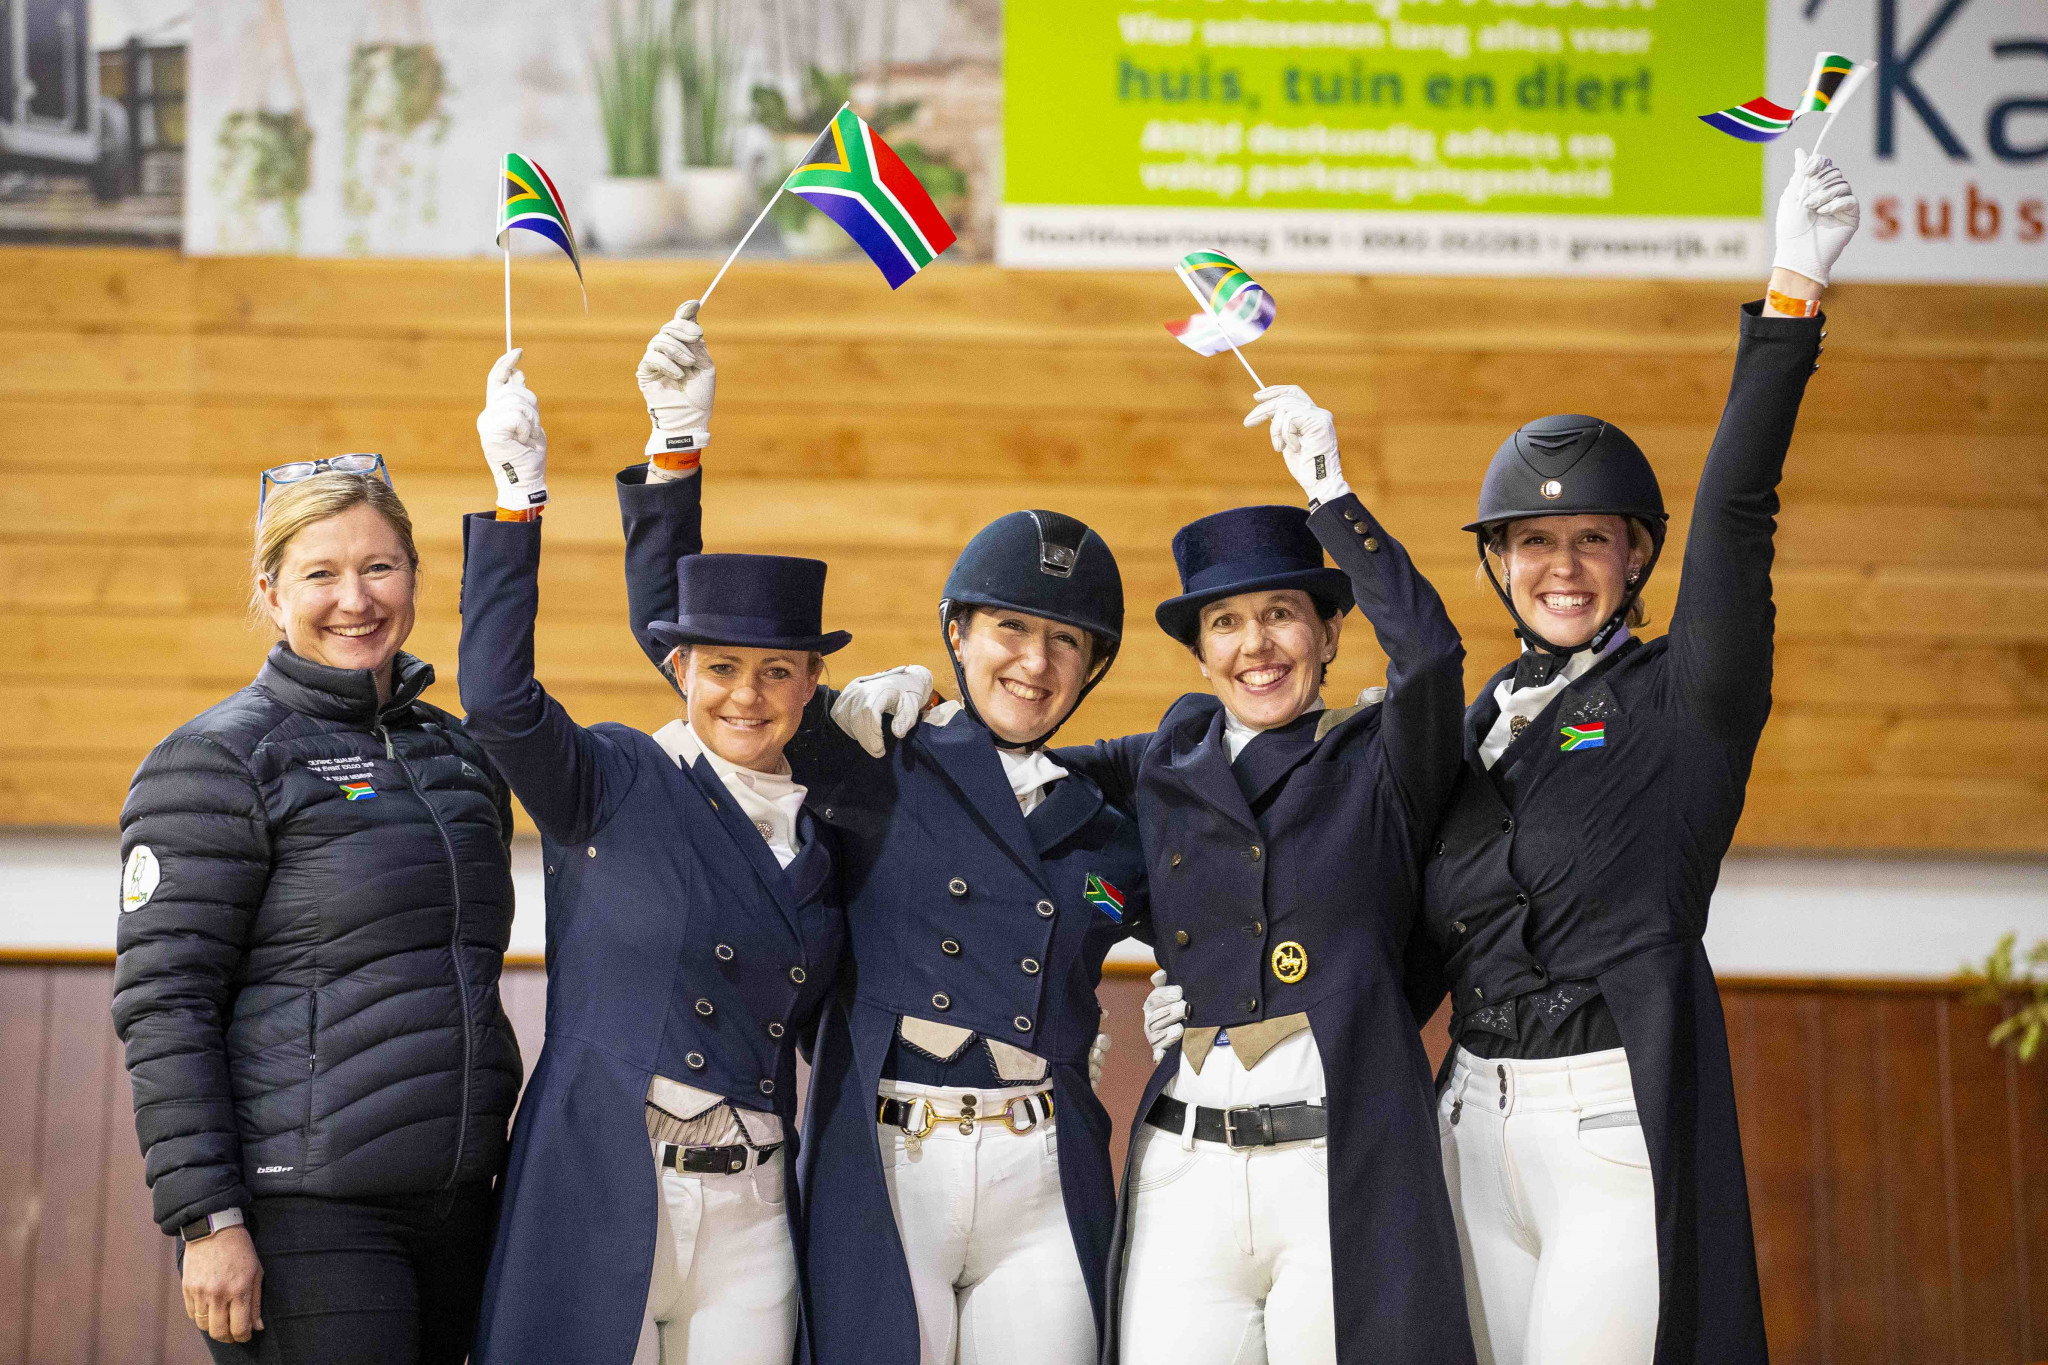 South Africa seal last dressage spot at Tokyo 2020